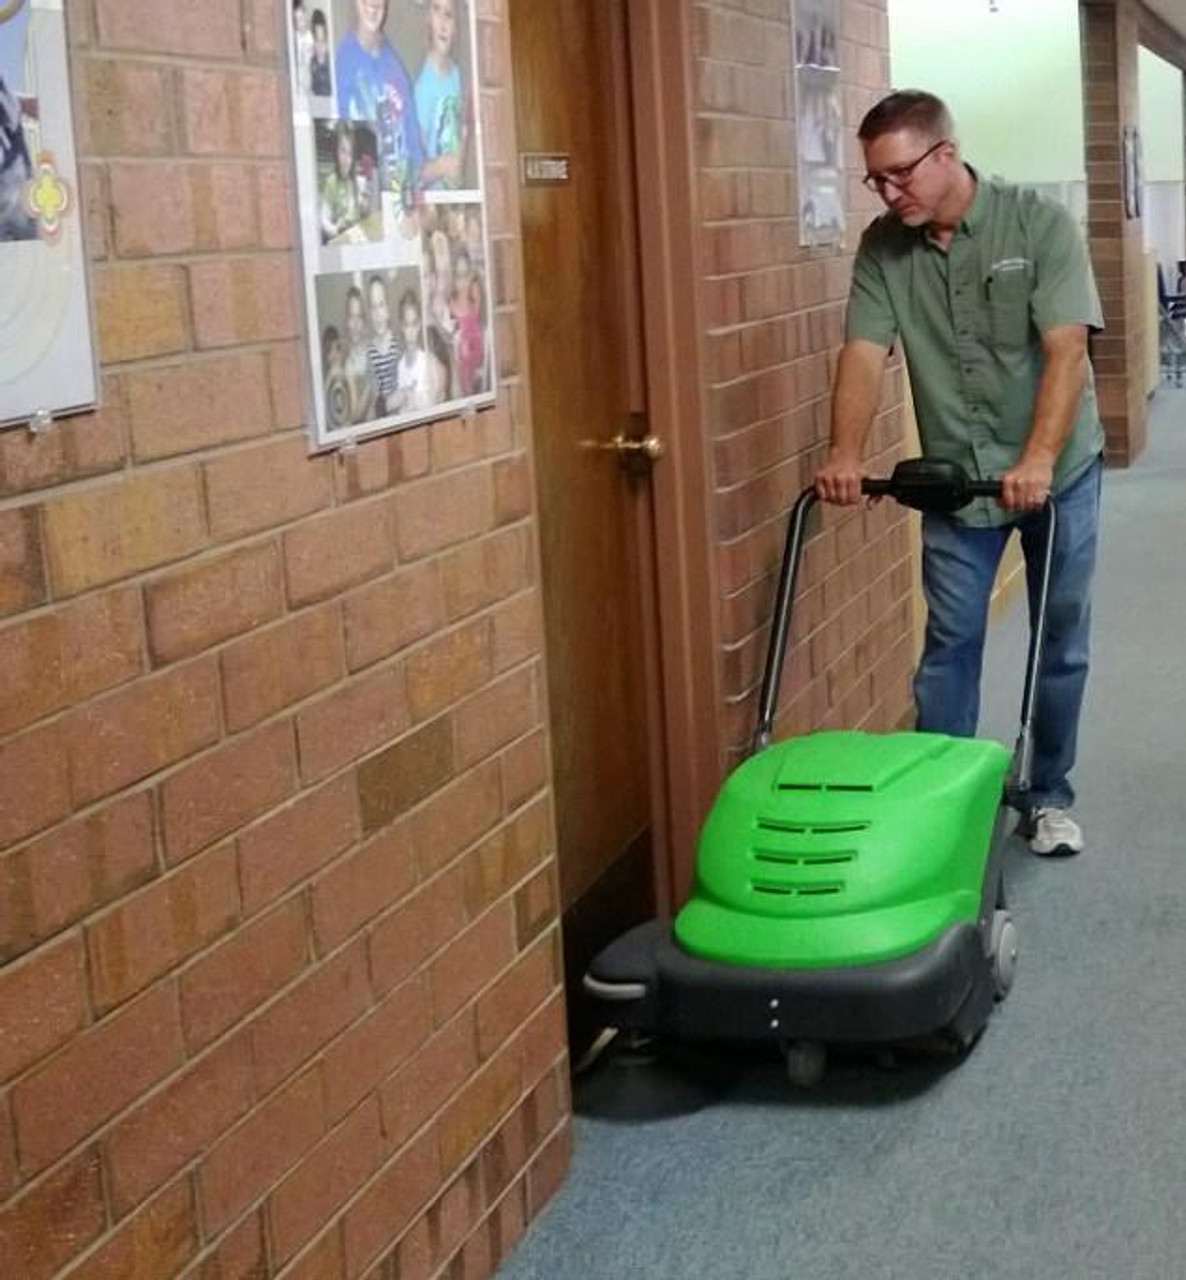 Leave no dirt behind in doorways with the SmartVac 464!